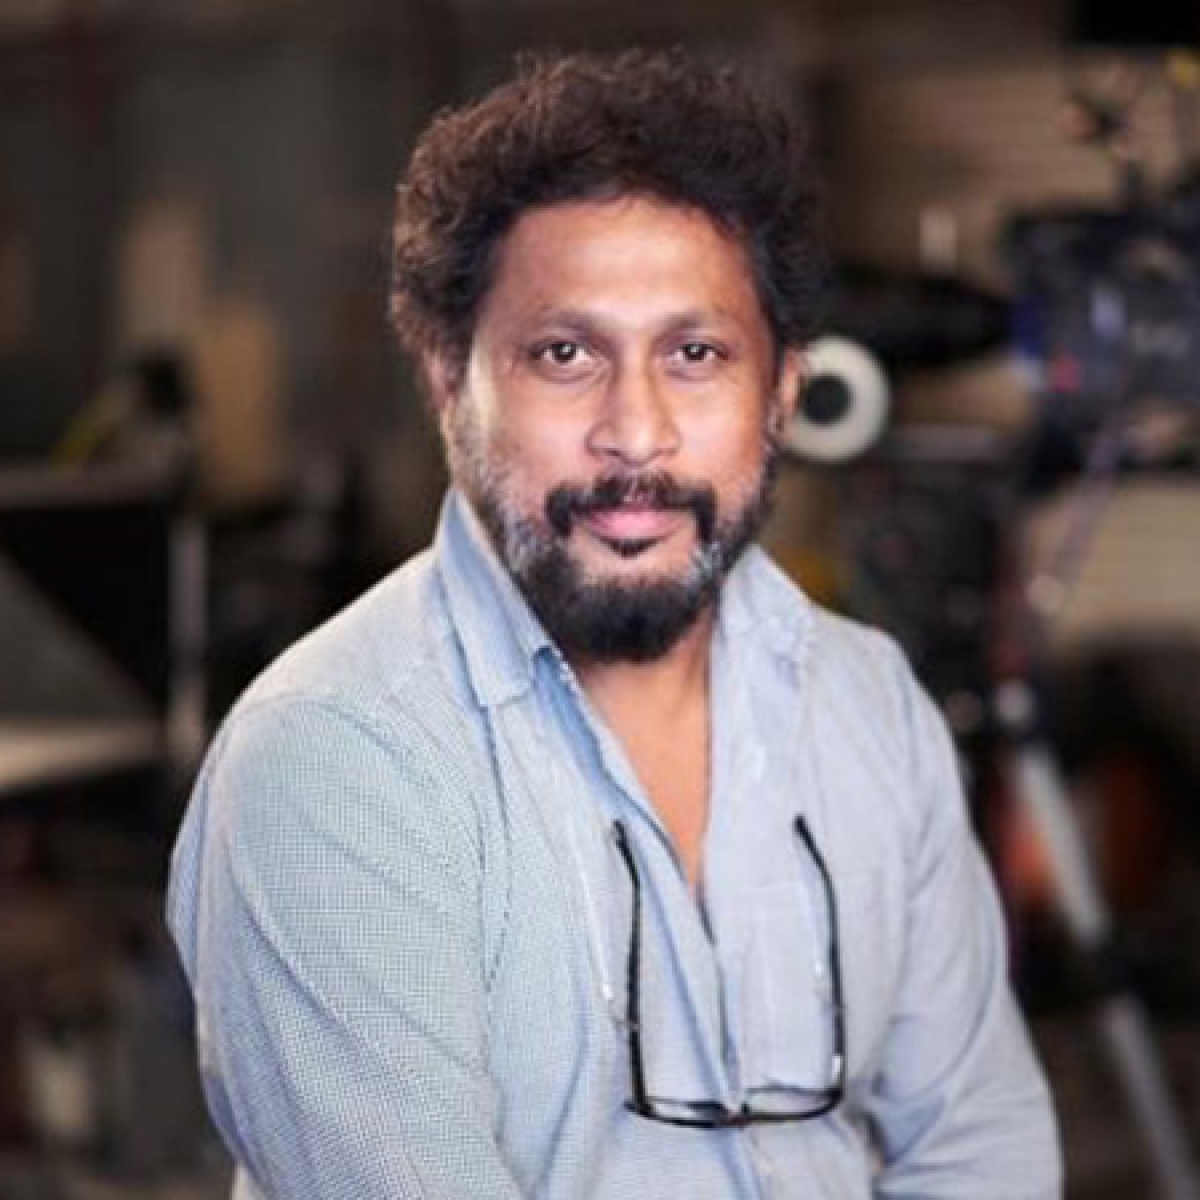 Shoojit Sircar takes a dig at Bollywood: Get rid of duality before preaching morality